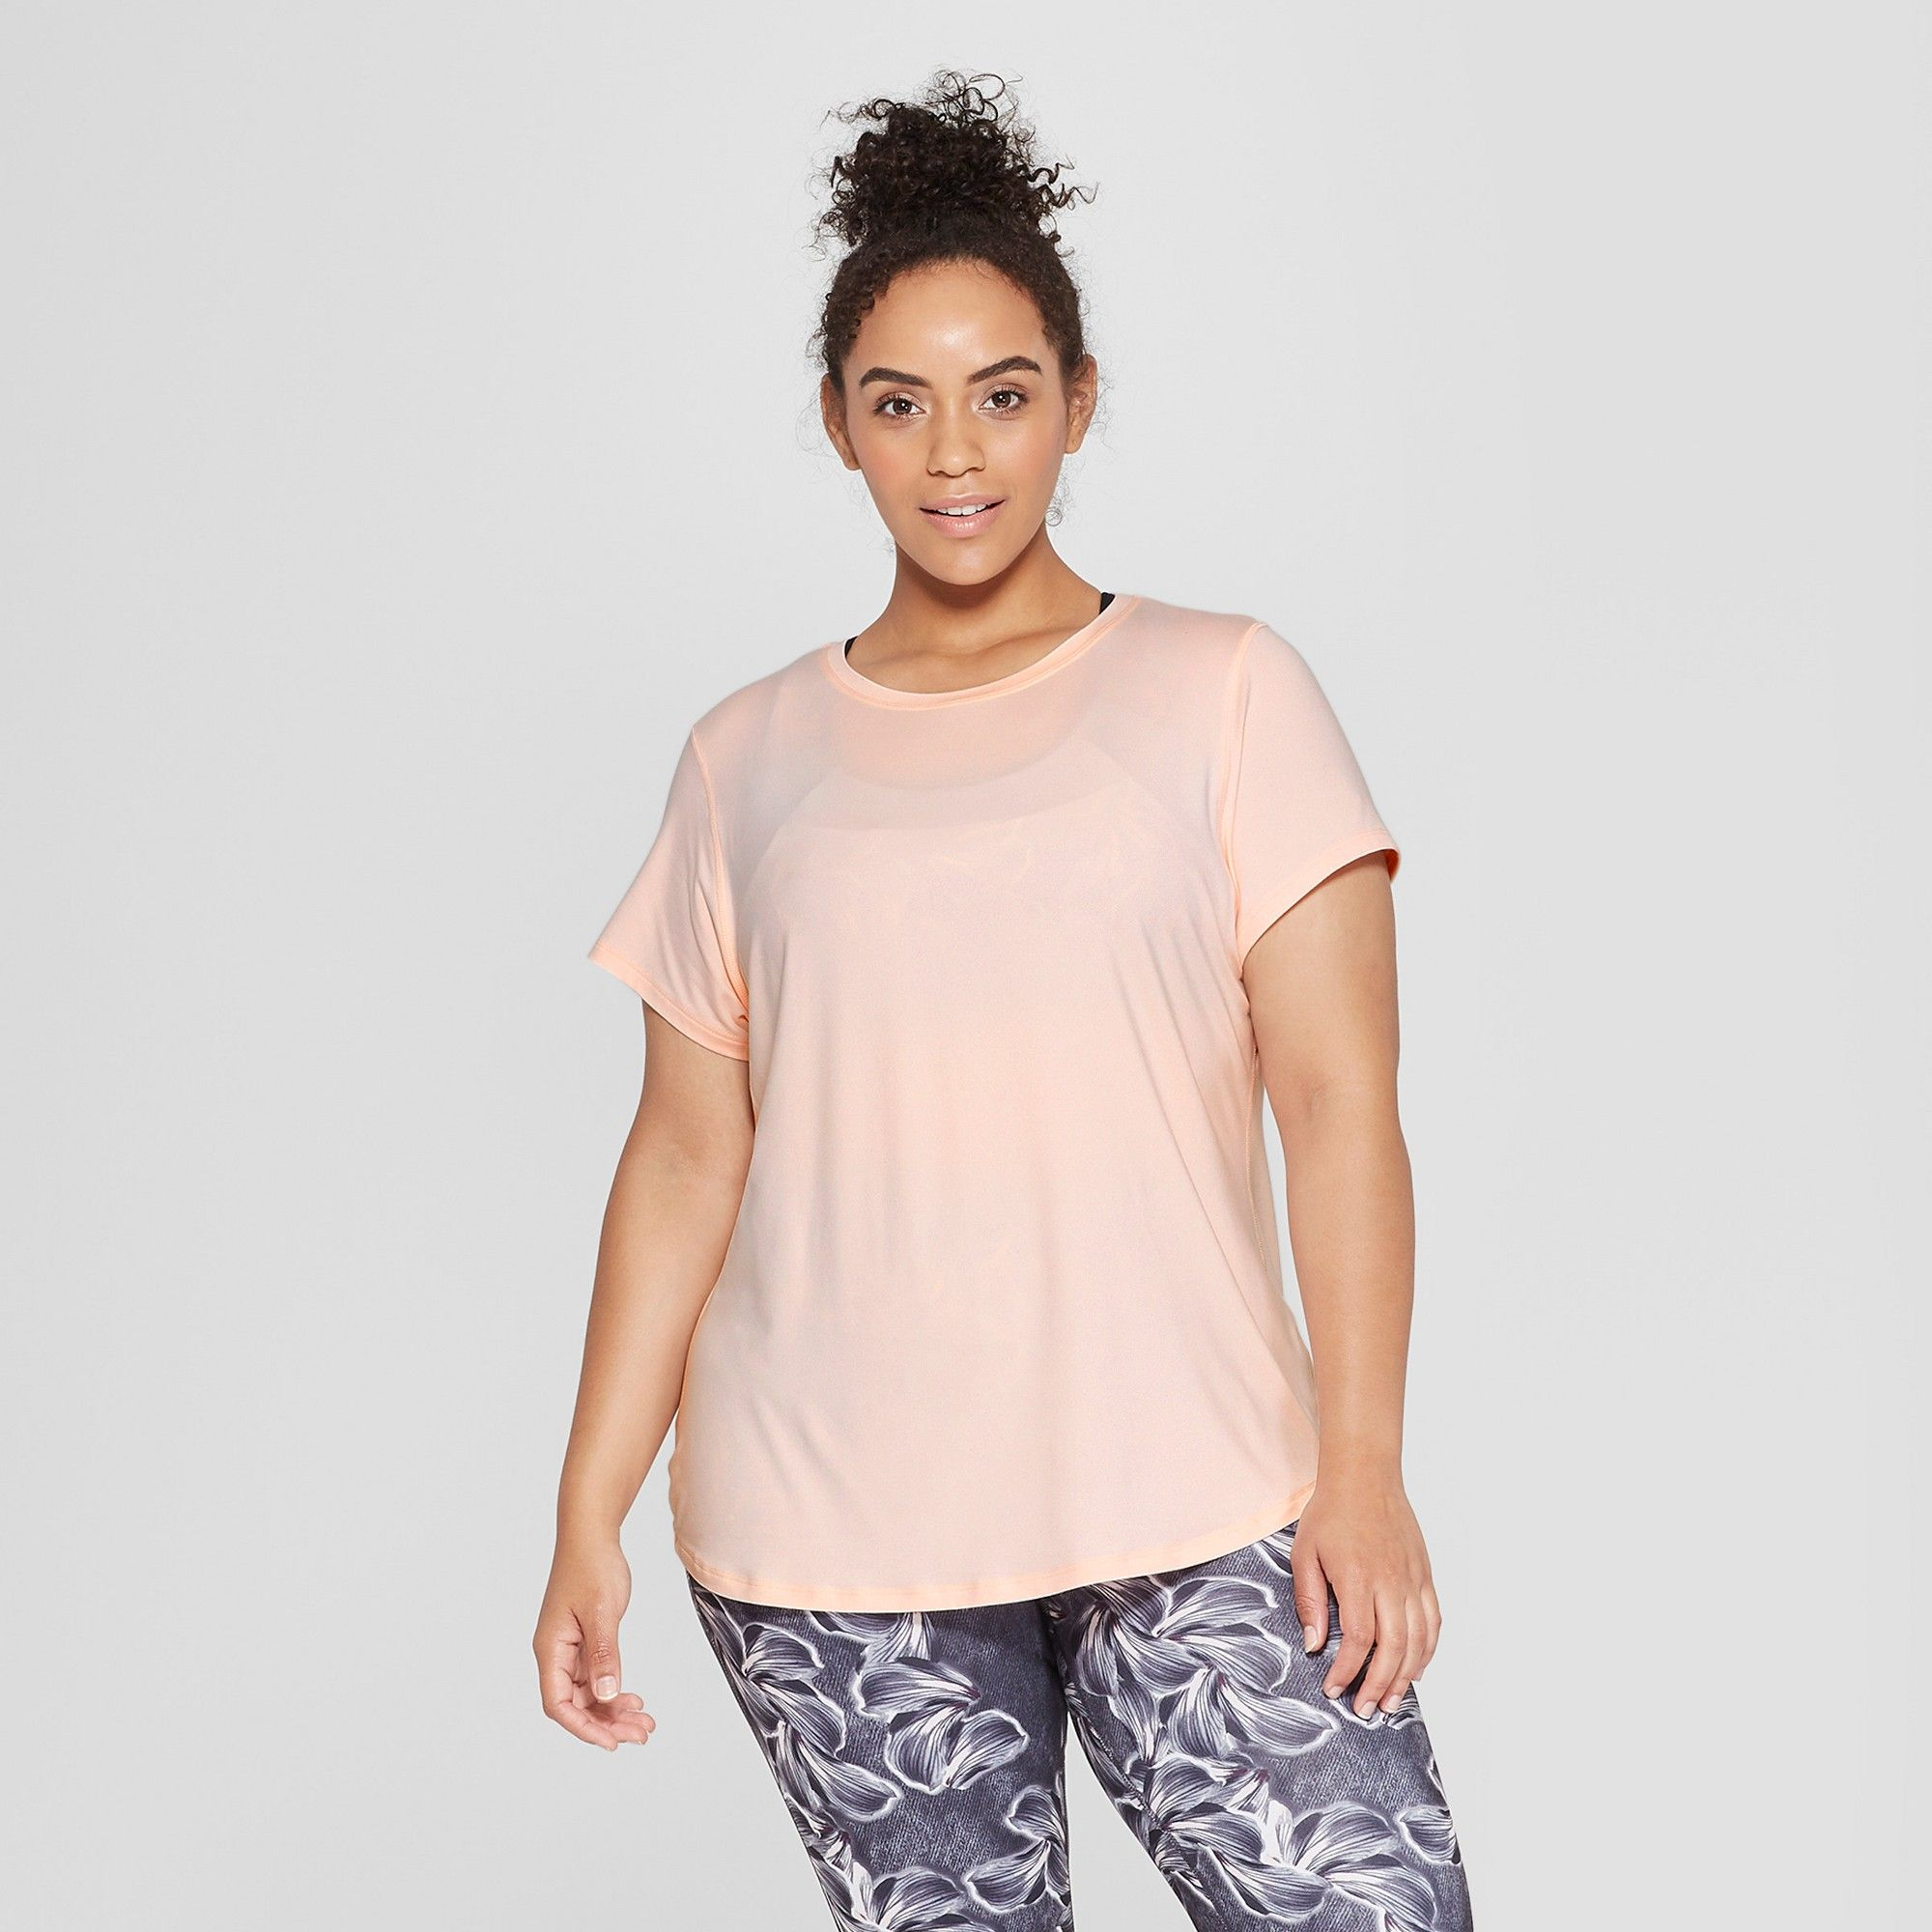 ee7b4df6f3a Women s Plus Size Semi-Fitted Soft T-Shirt - C9 Champion Pale Blush Pink 1X